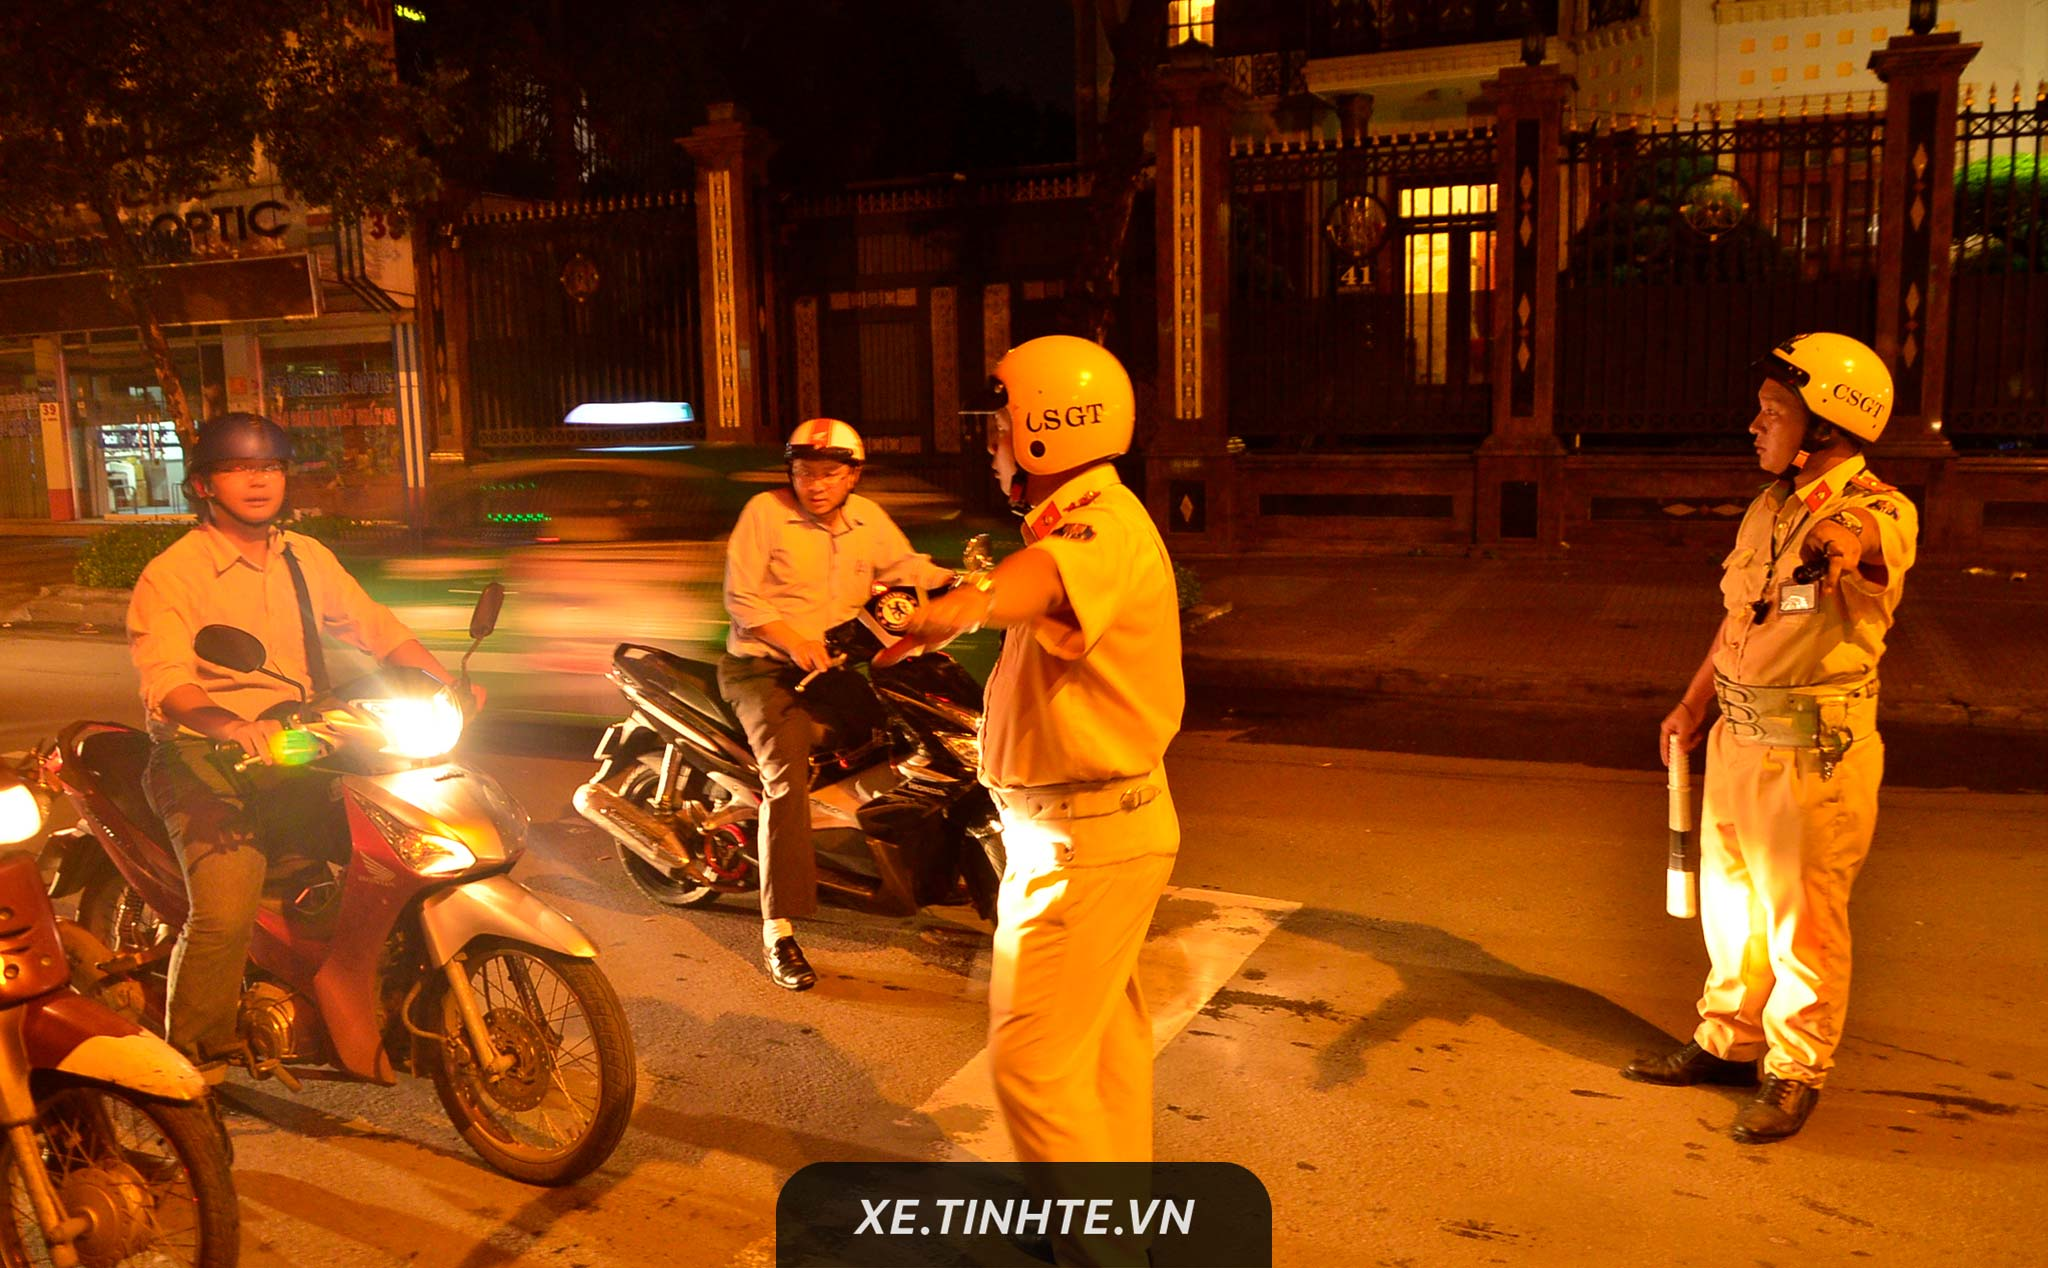 Penalty for basic errors of motorbikes when participating in traffic